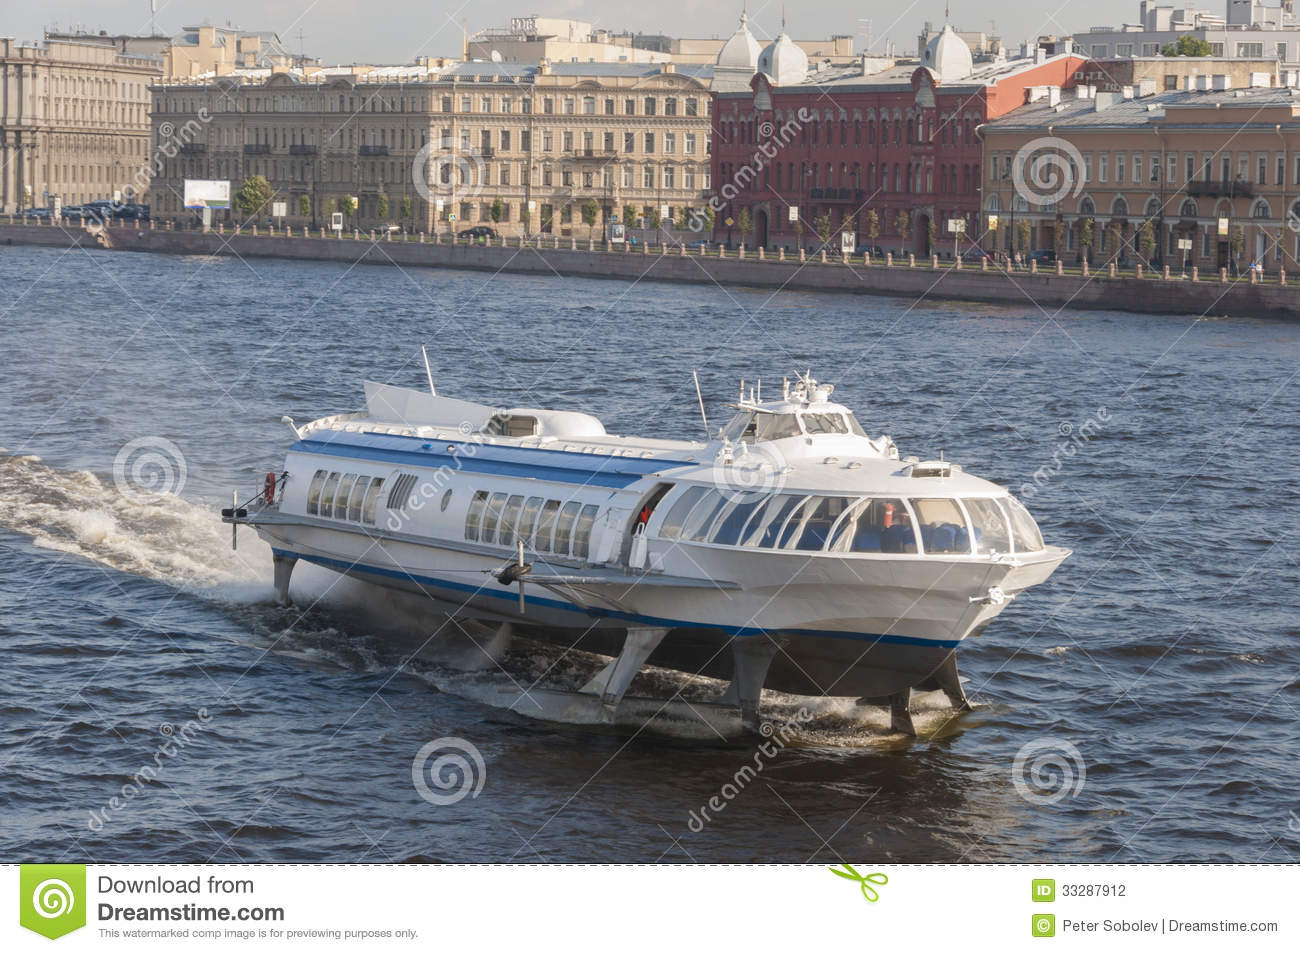 Hydrofoil Boat Stock Photography - Image: 33287912